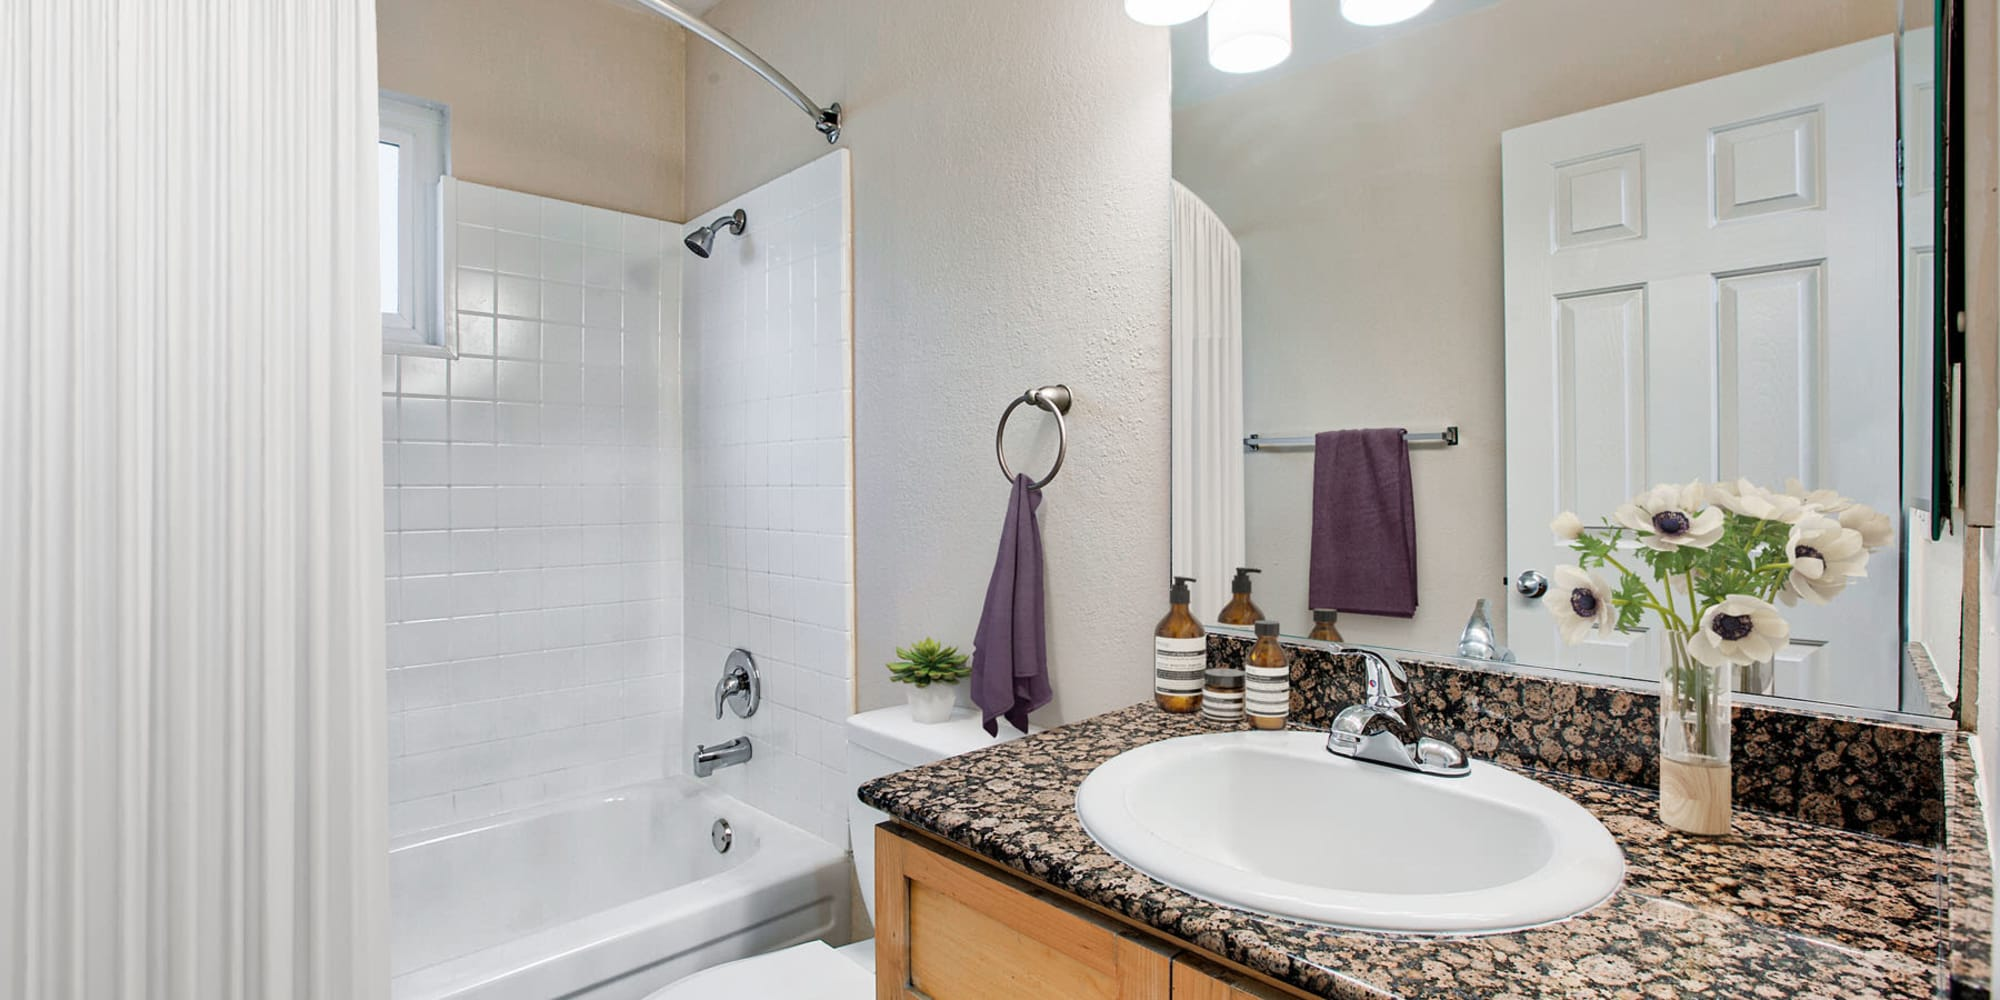 Tiled shower and a granite countertop in a model apartment's bathroom at Pleasanton Place Apartment Homes in Pleasanton, California